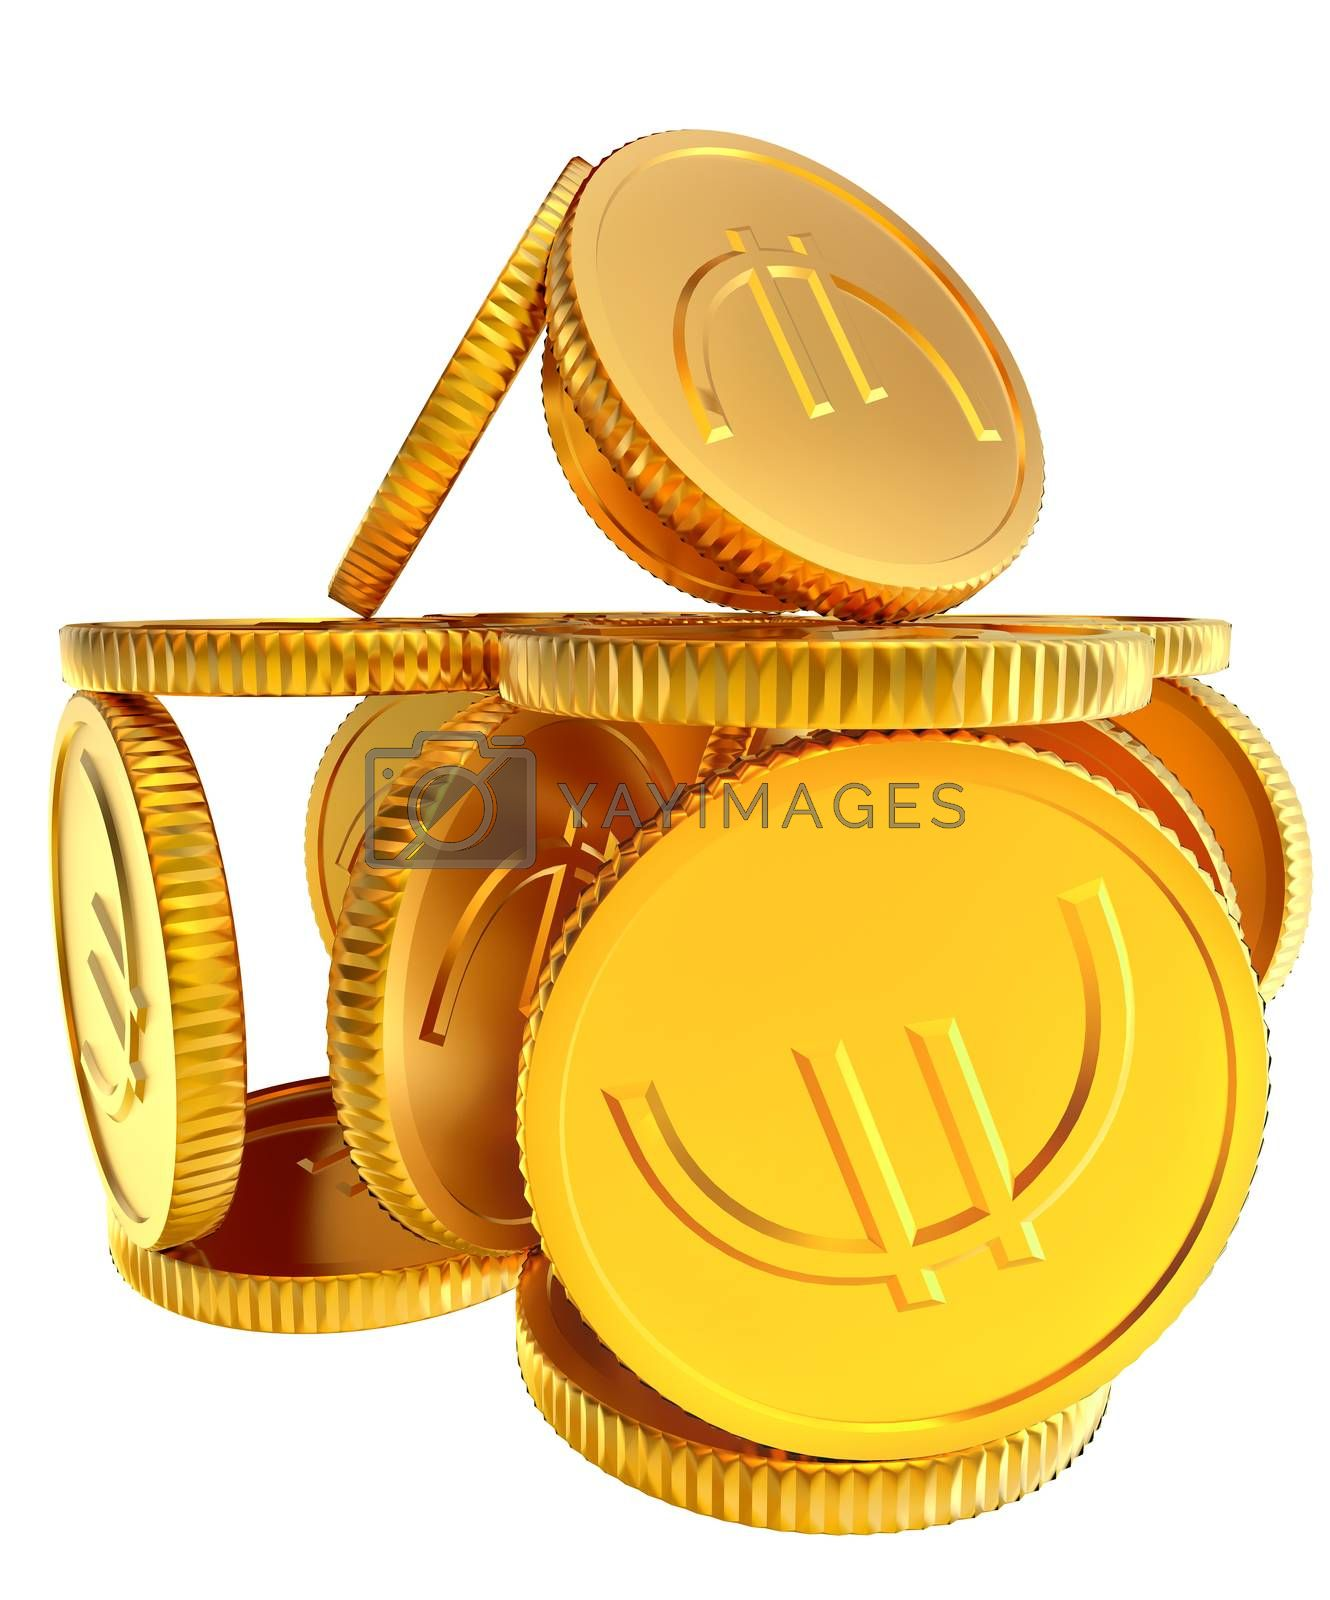 Stacks of golden EURO coins on white background